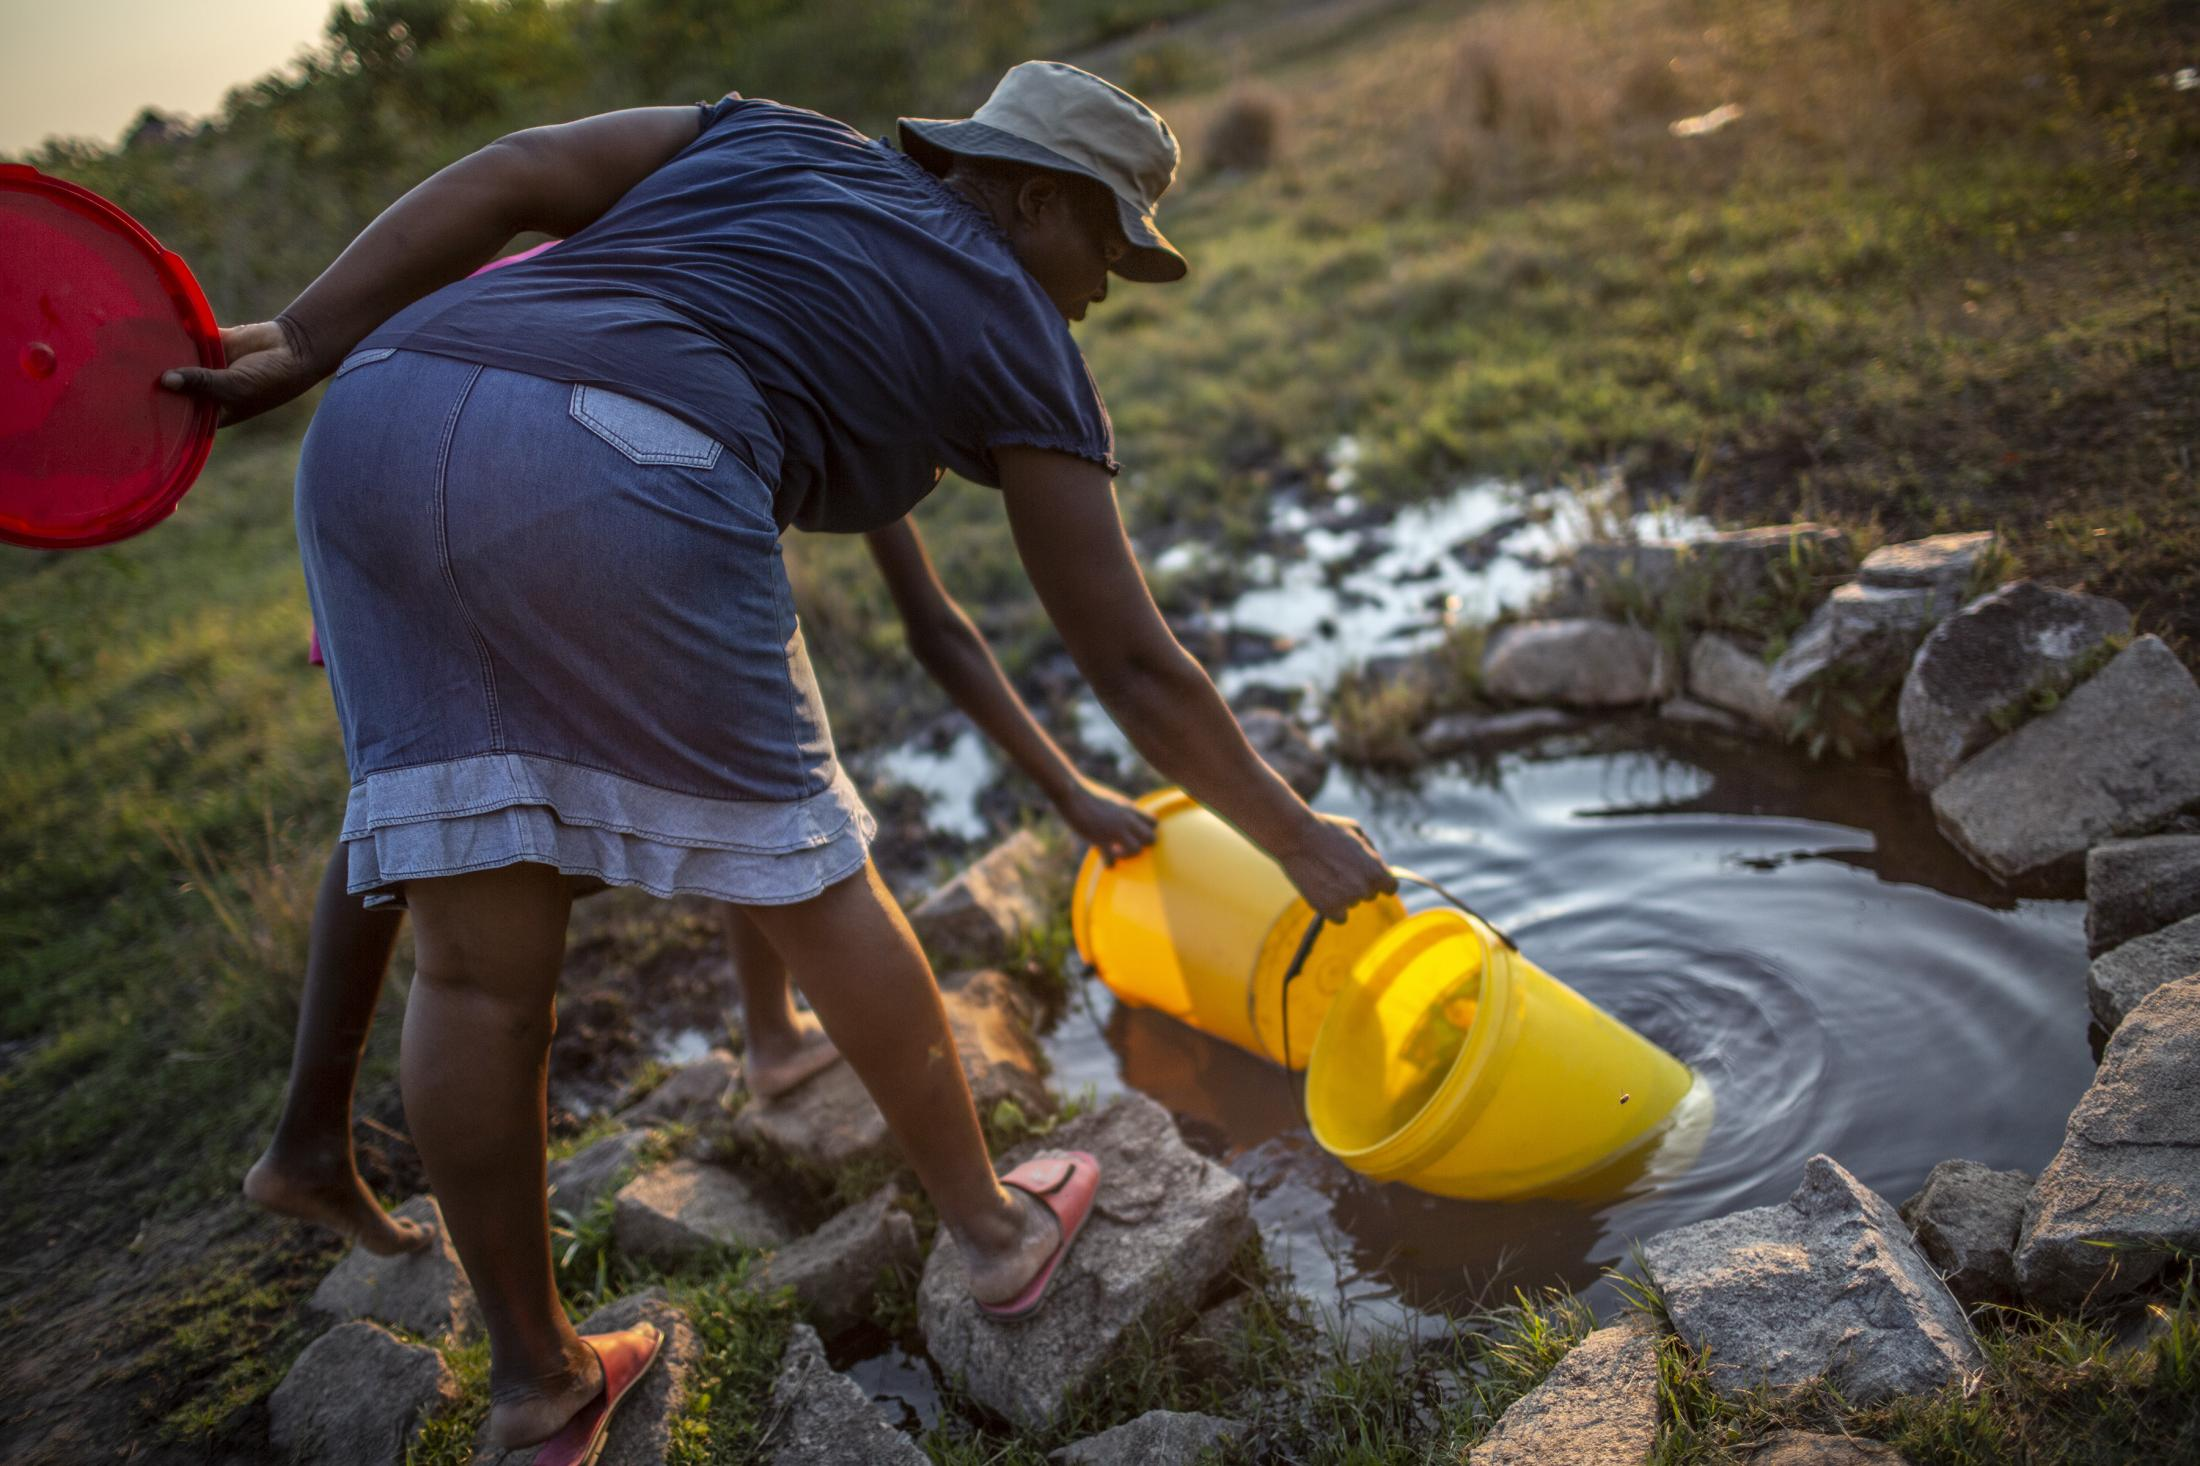 Tariro Chinamo (43) (foreground) and her daughter, Lana Fariva (14) fill their buckets in a spring in Masvingo, Zimbabwe on October 07, 2019. The family has no electricity or water at home and have to walk for over a km to a spring to fetch water everyday. They have no choice but to use this for drinking and cooking as well, so it will be boiled.